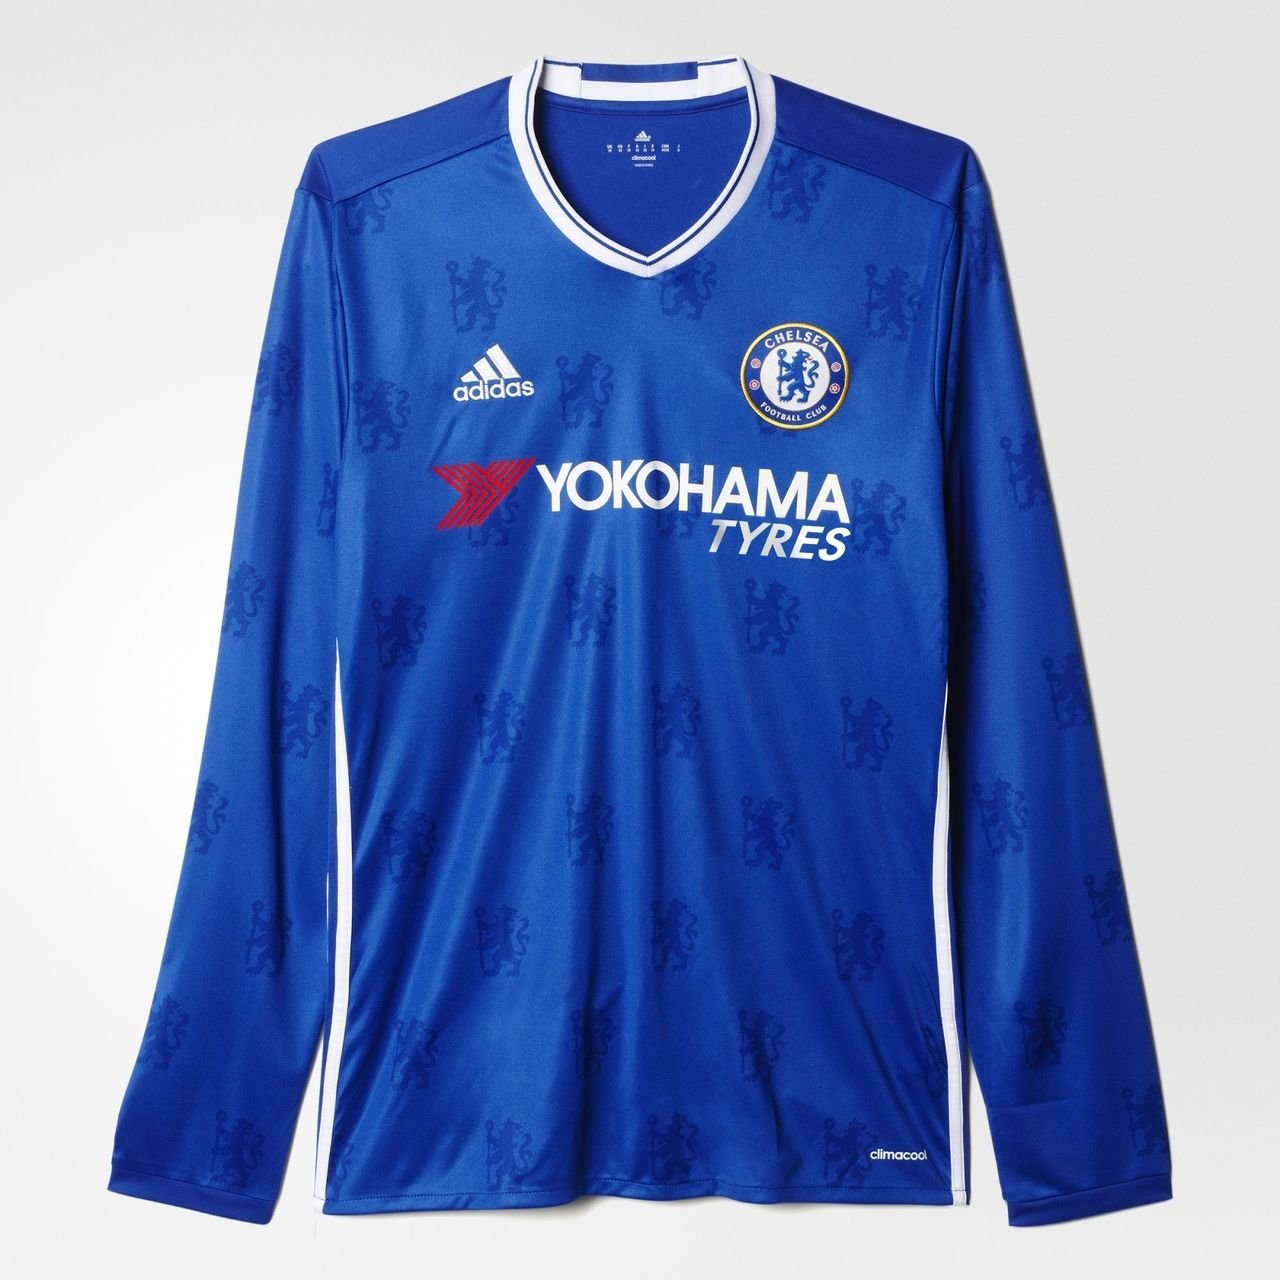 9fdc1a0a0af Amazon.com   adidas Men s Chelsea Long Sleeve Home Soccer Jersey 2016 17  (Blue)   Sports   Outdoors